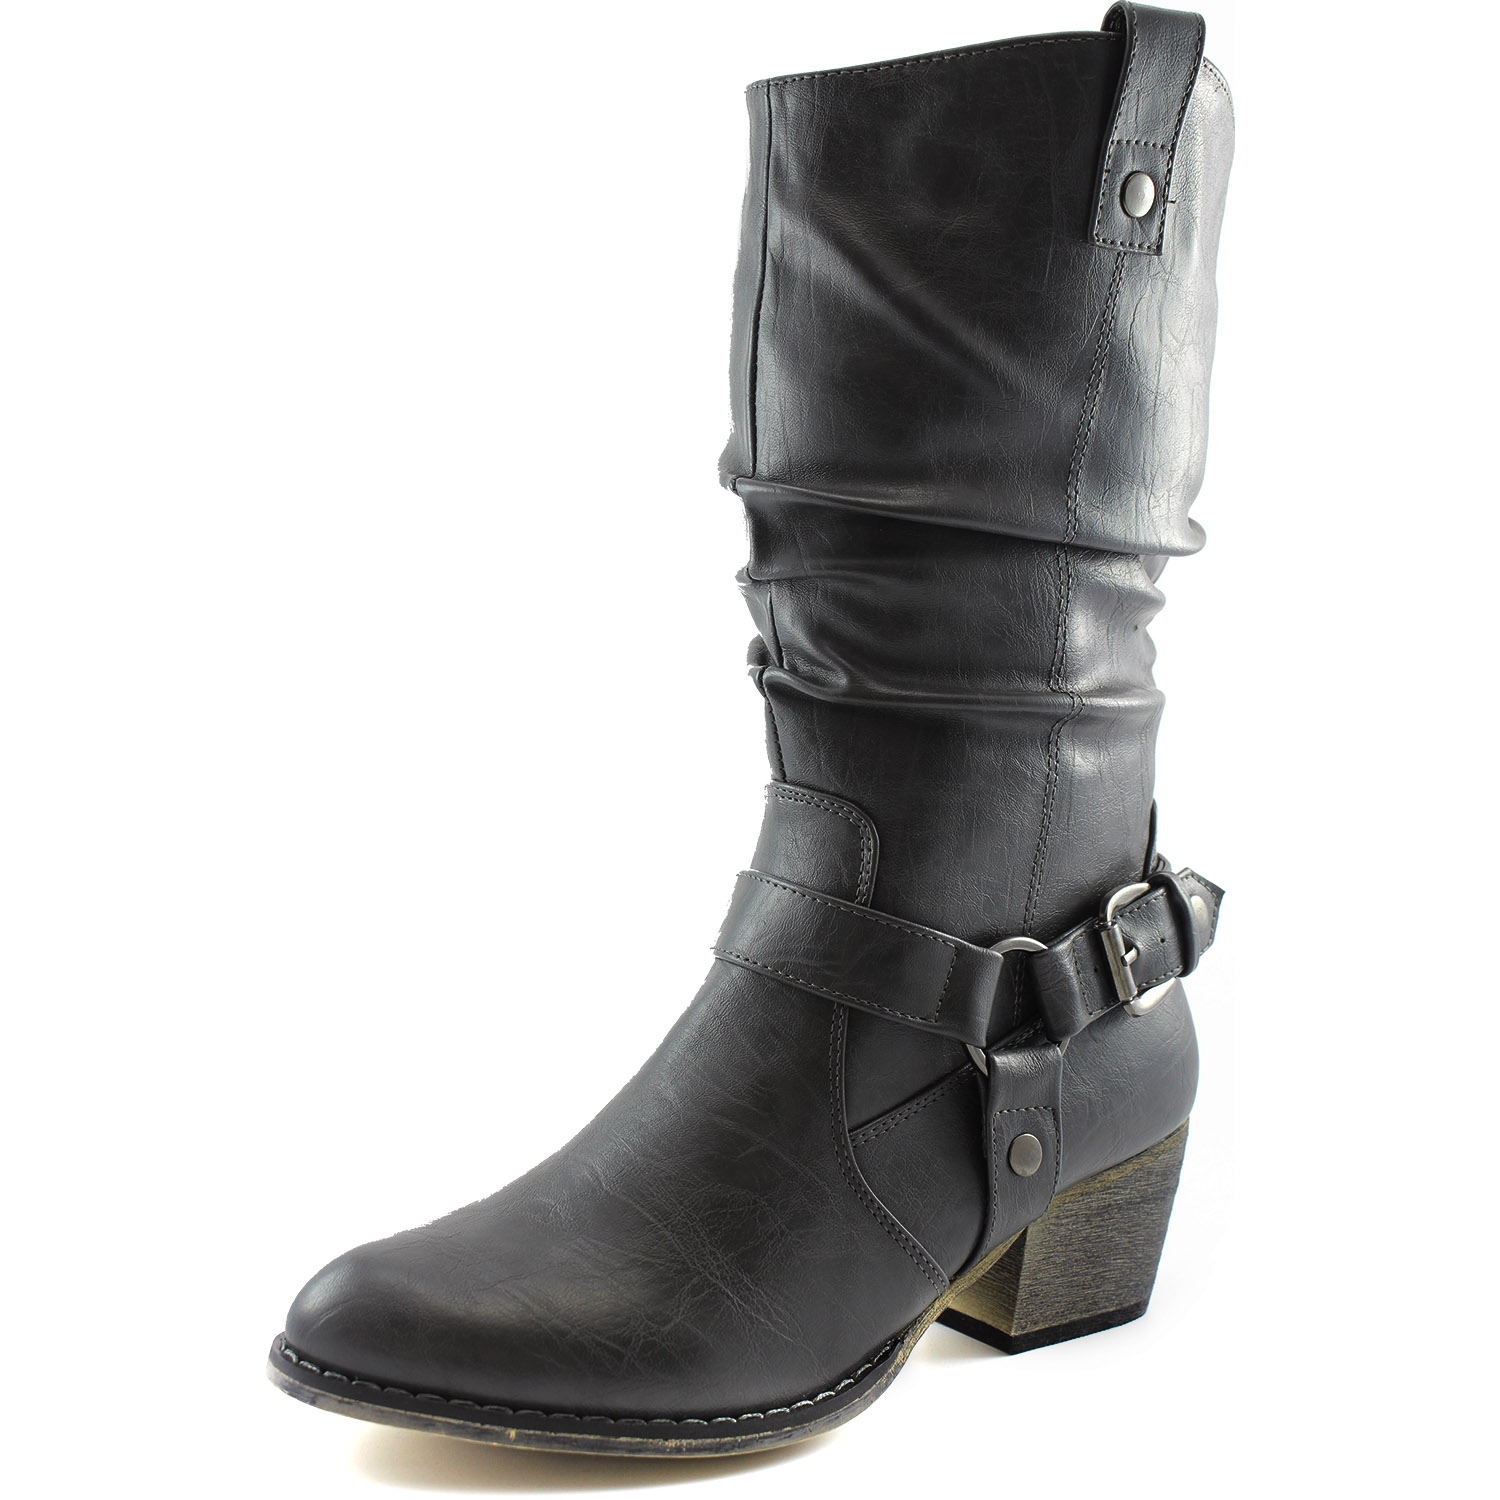 WOMEN'S BOOTS. Whether you're looking for fashionable, functional, or both, our collection of women's boots has what you're looking for. Discover 6-inch premium women's waterproof boots in a wide range of styles and colors, or shop our collection of ankle boots, hiking boots, heeled boots, chukka boots.